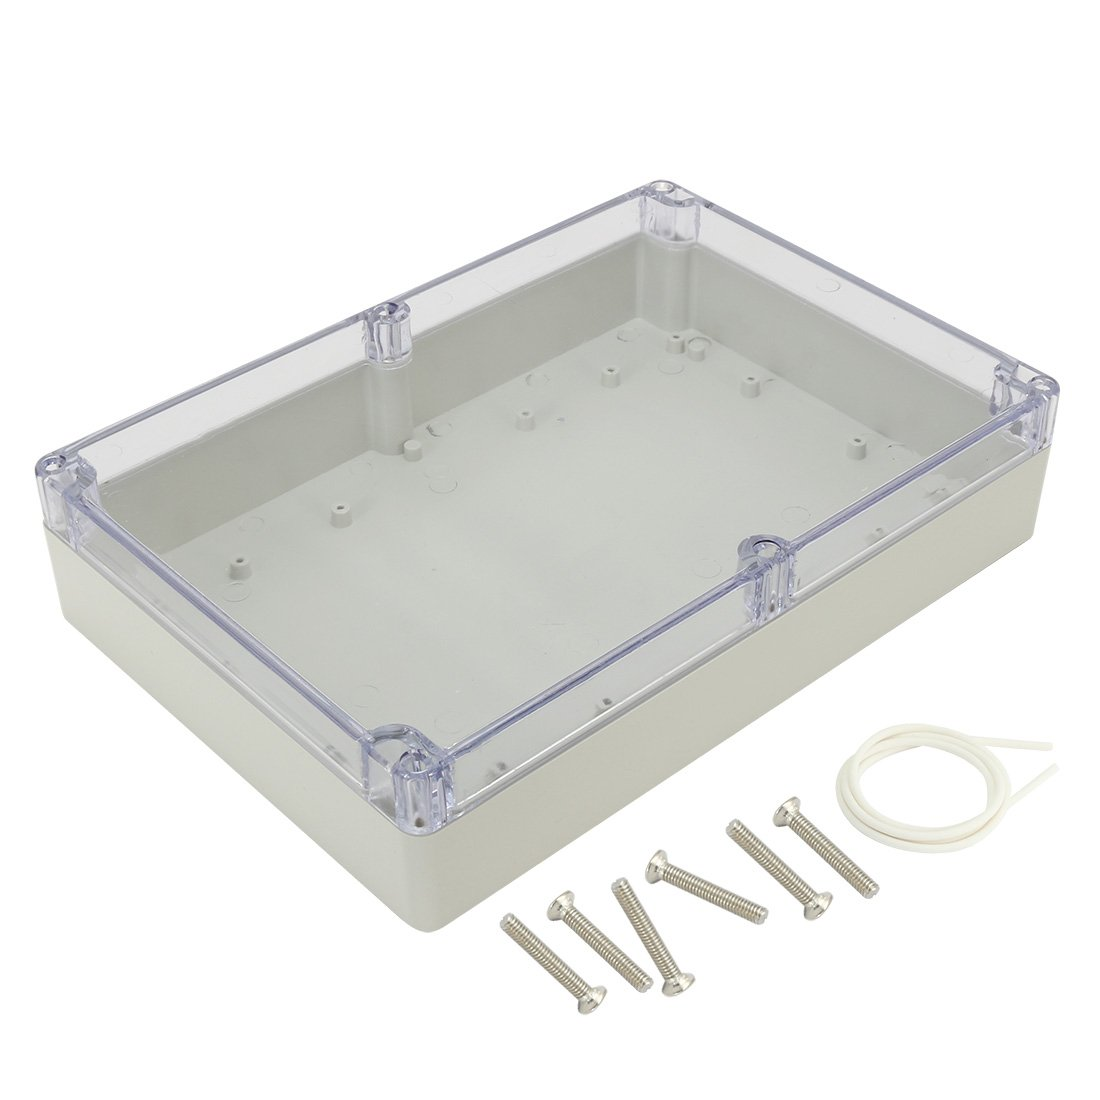 uxcell 10.4''x7.2''x2.4''(263mmx182mmx60mm) ABS Junction Box Electric Project Enclosure Clear